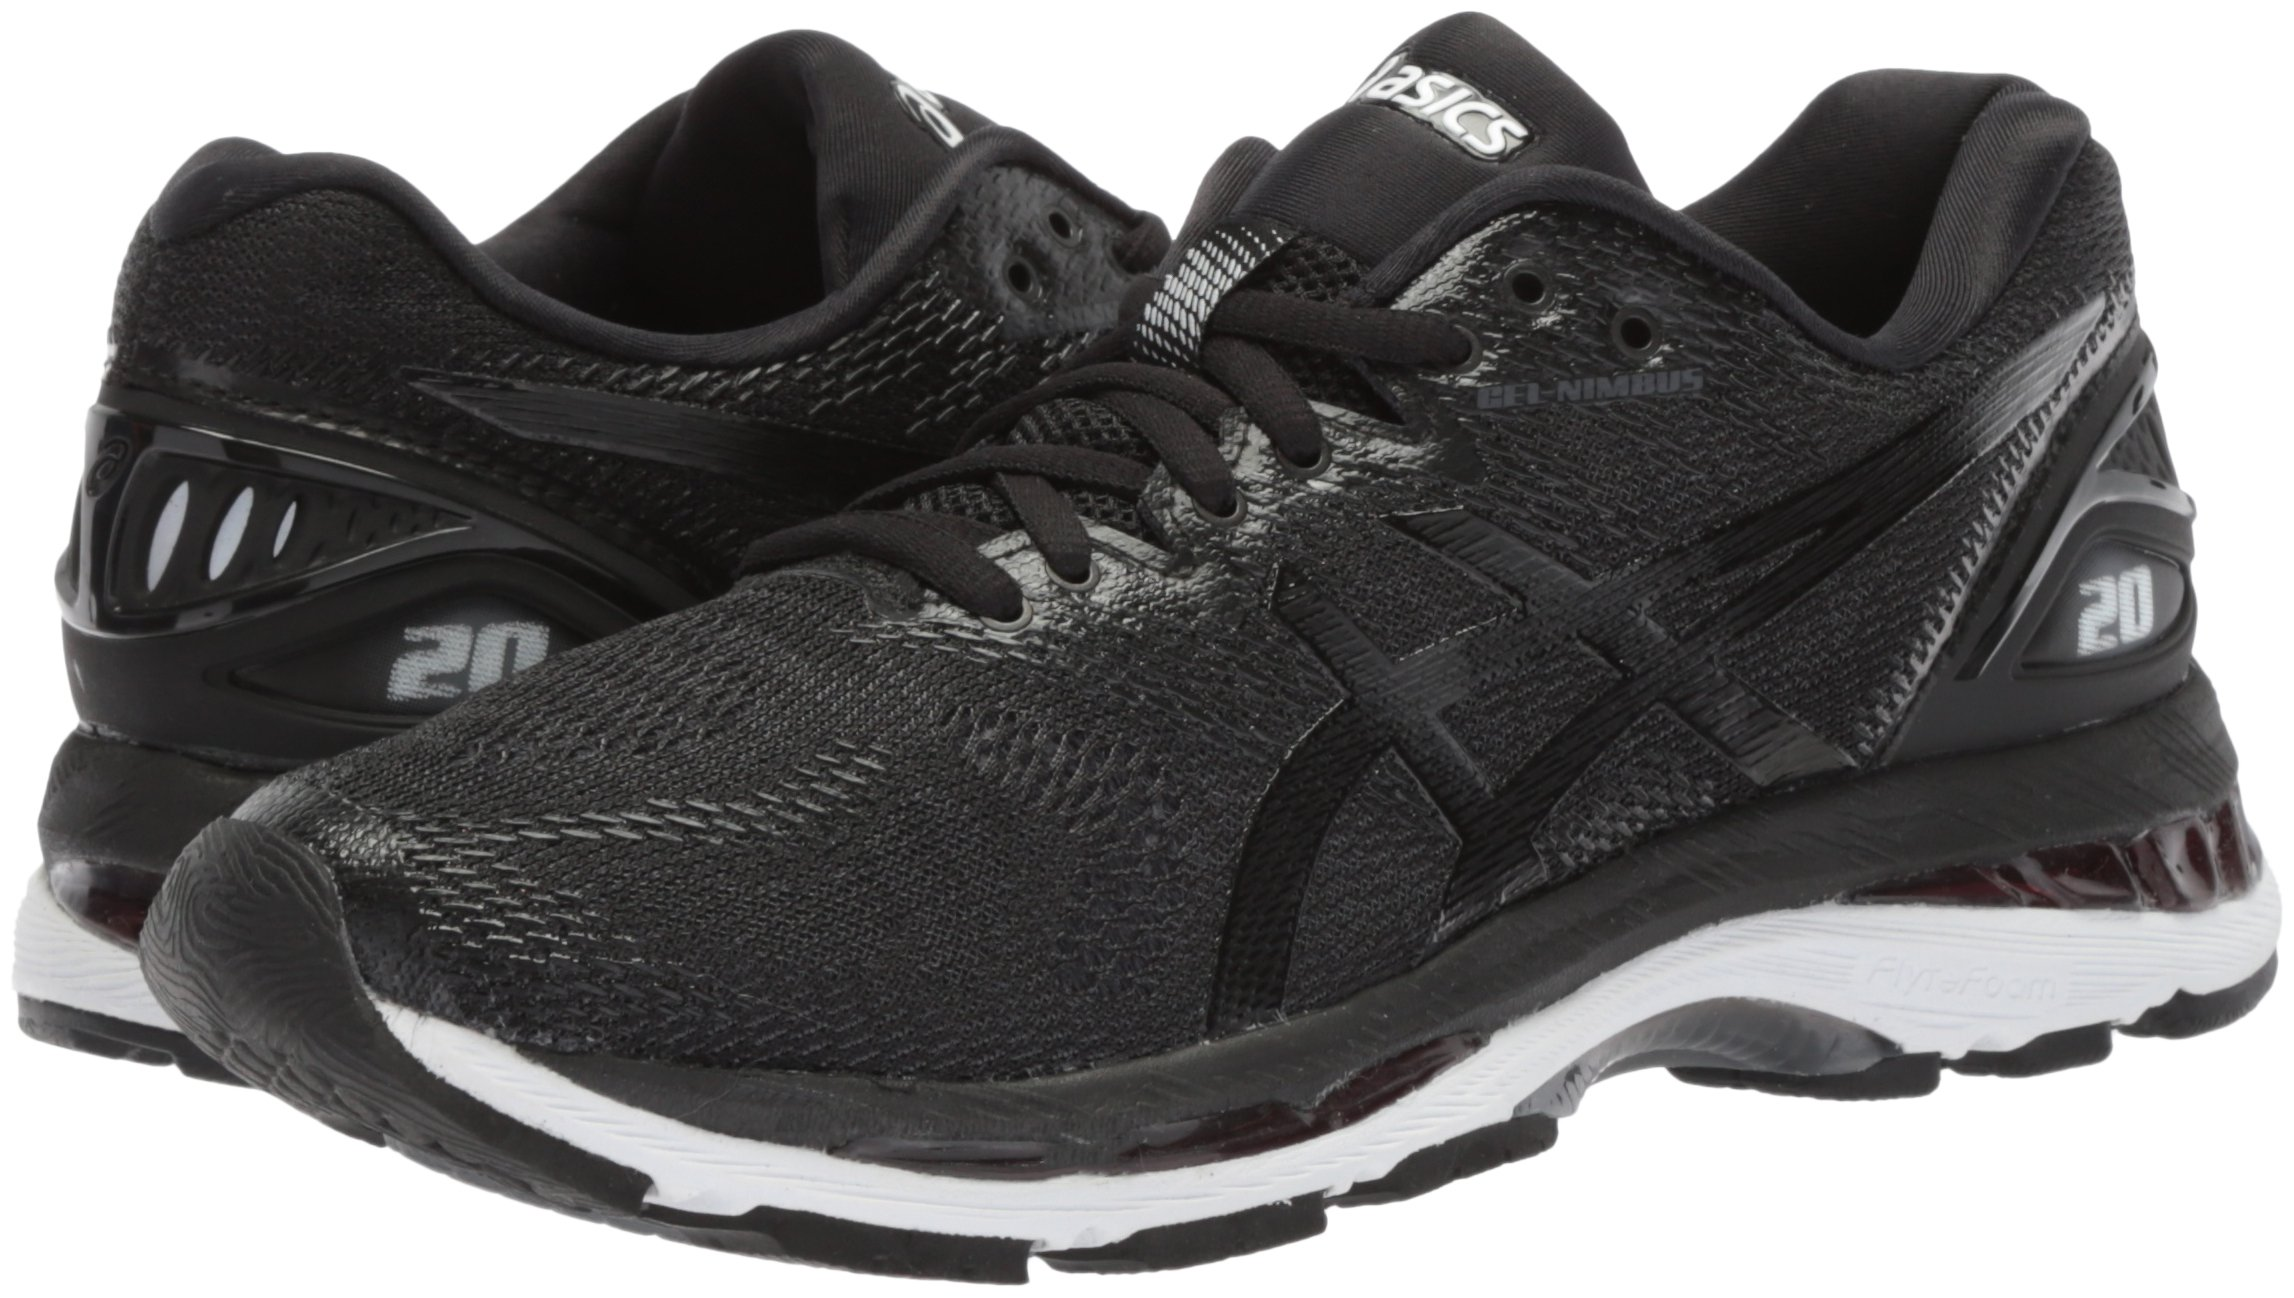 ASICS Women's Gel-Nimbus 20 Running Shoe, black/white/carbon, 5 Medium US by ASICS (Image #5)